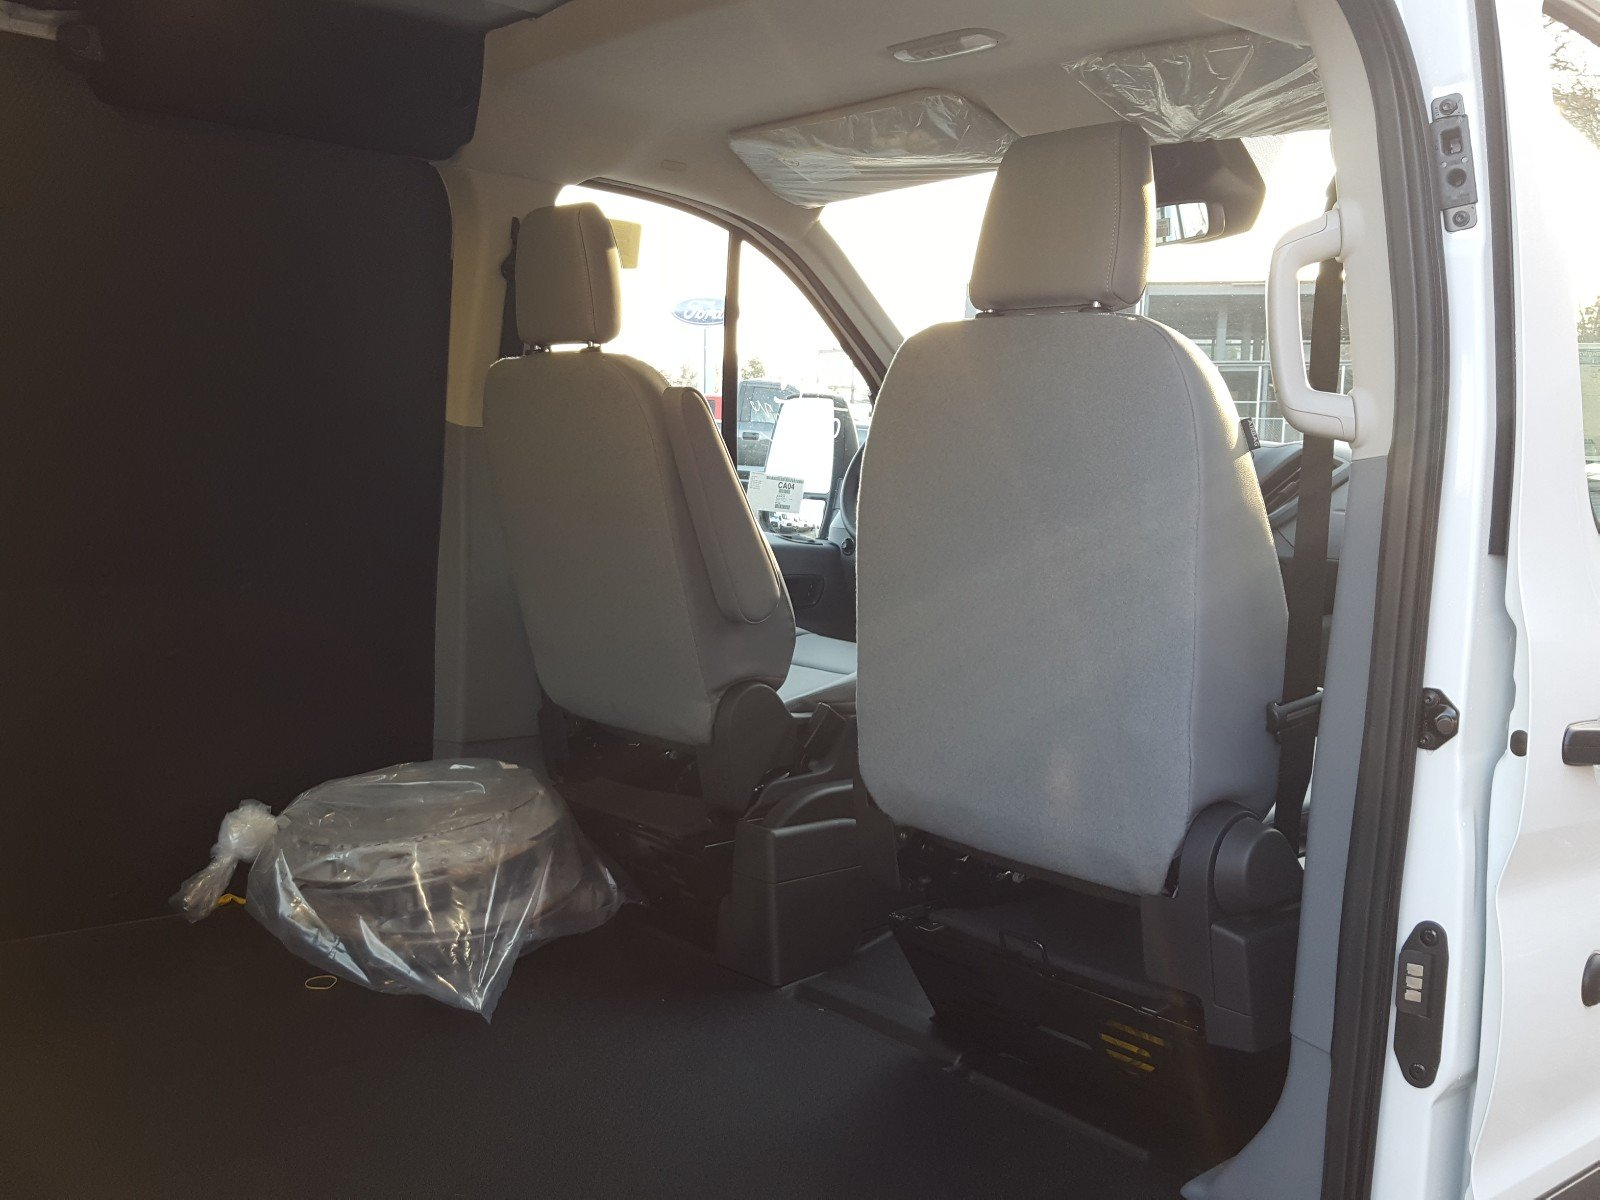 2018 Transit 250, Cargo Van #R7121 - photo 15